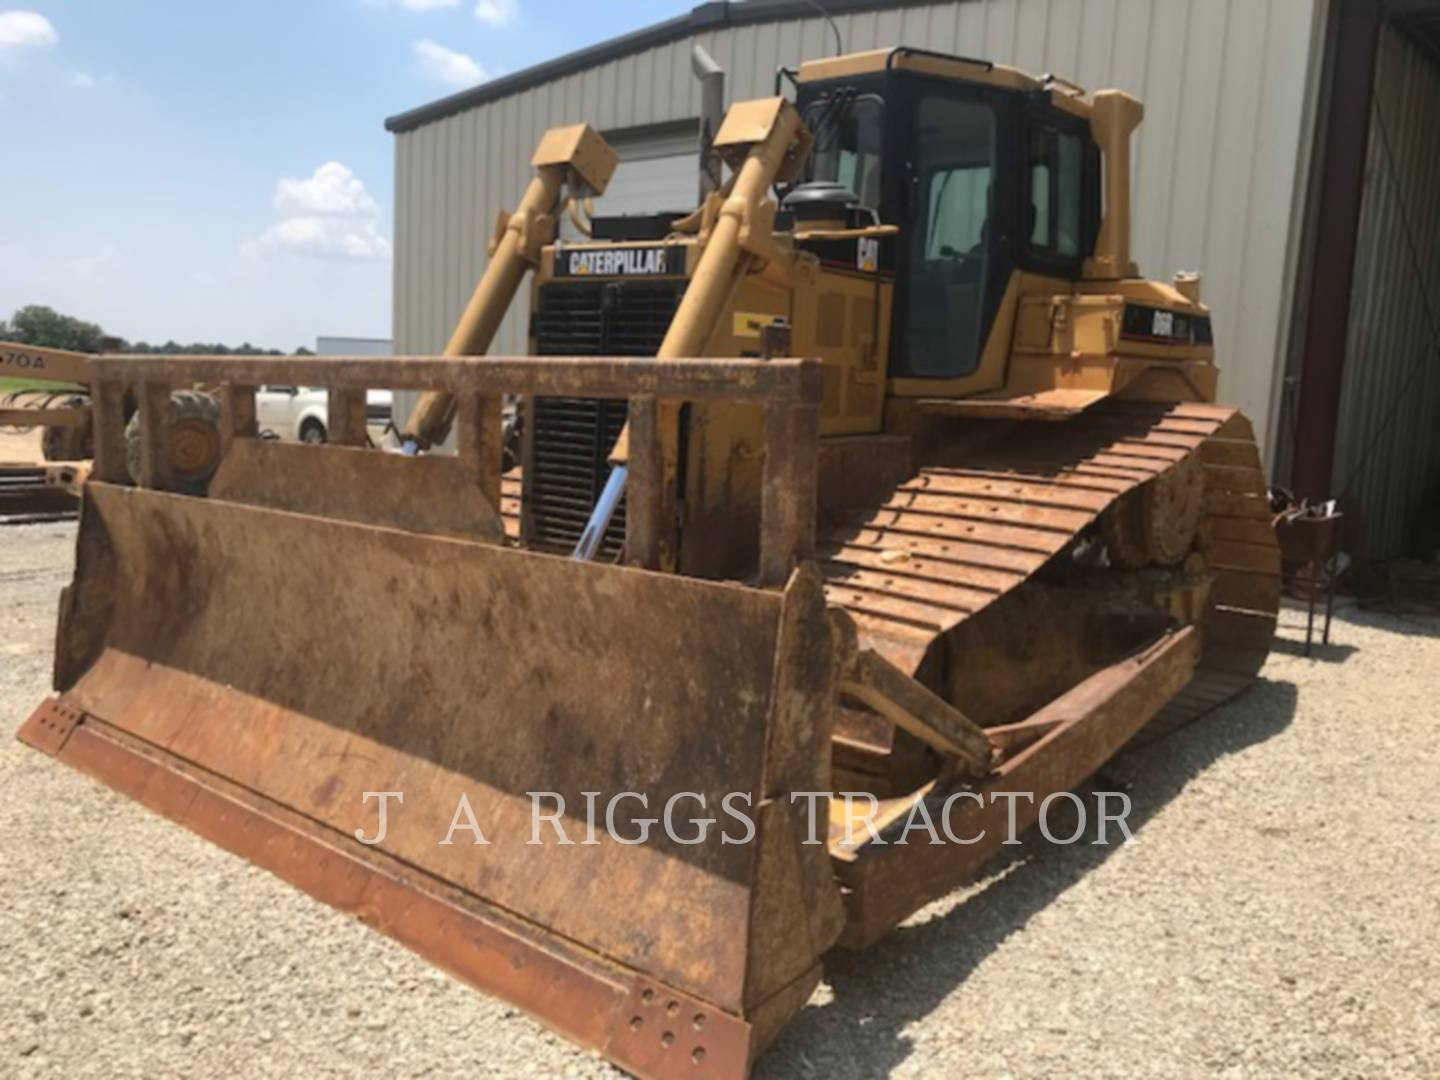 used track type tractors dozers for sale arkansas riggs cat. Black Bedroom Furniture Sets. Home Design Ideas